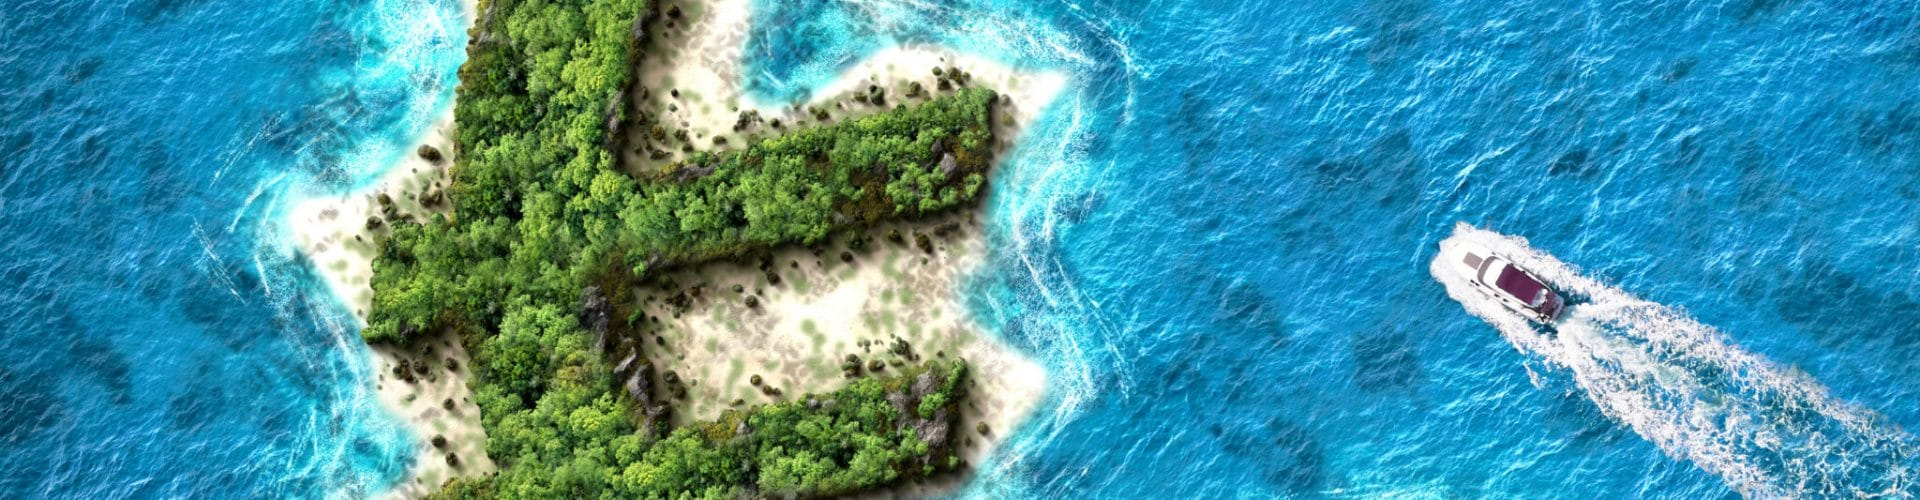 Euro shaped island. Tax haven concept for offshore bank accounts.